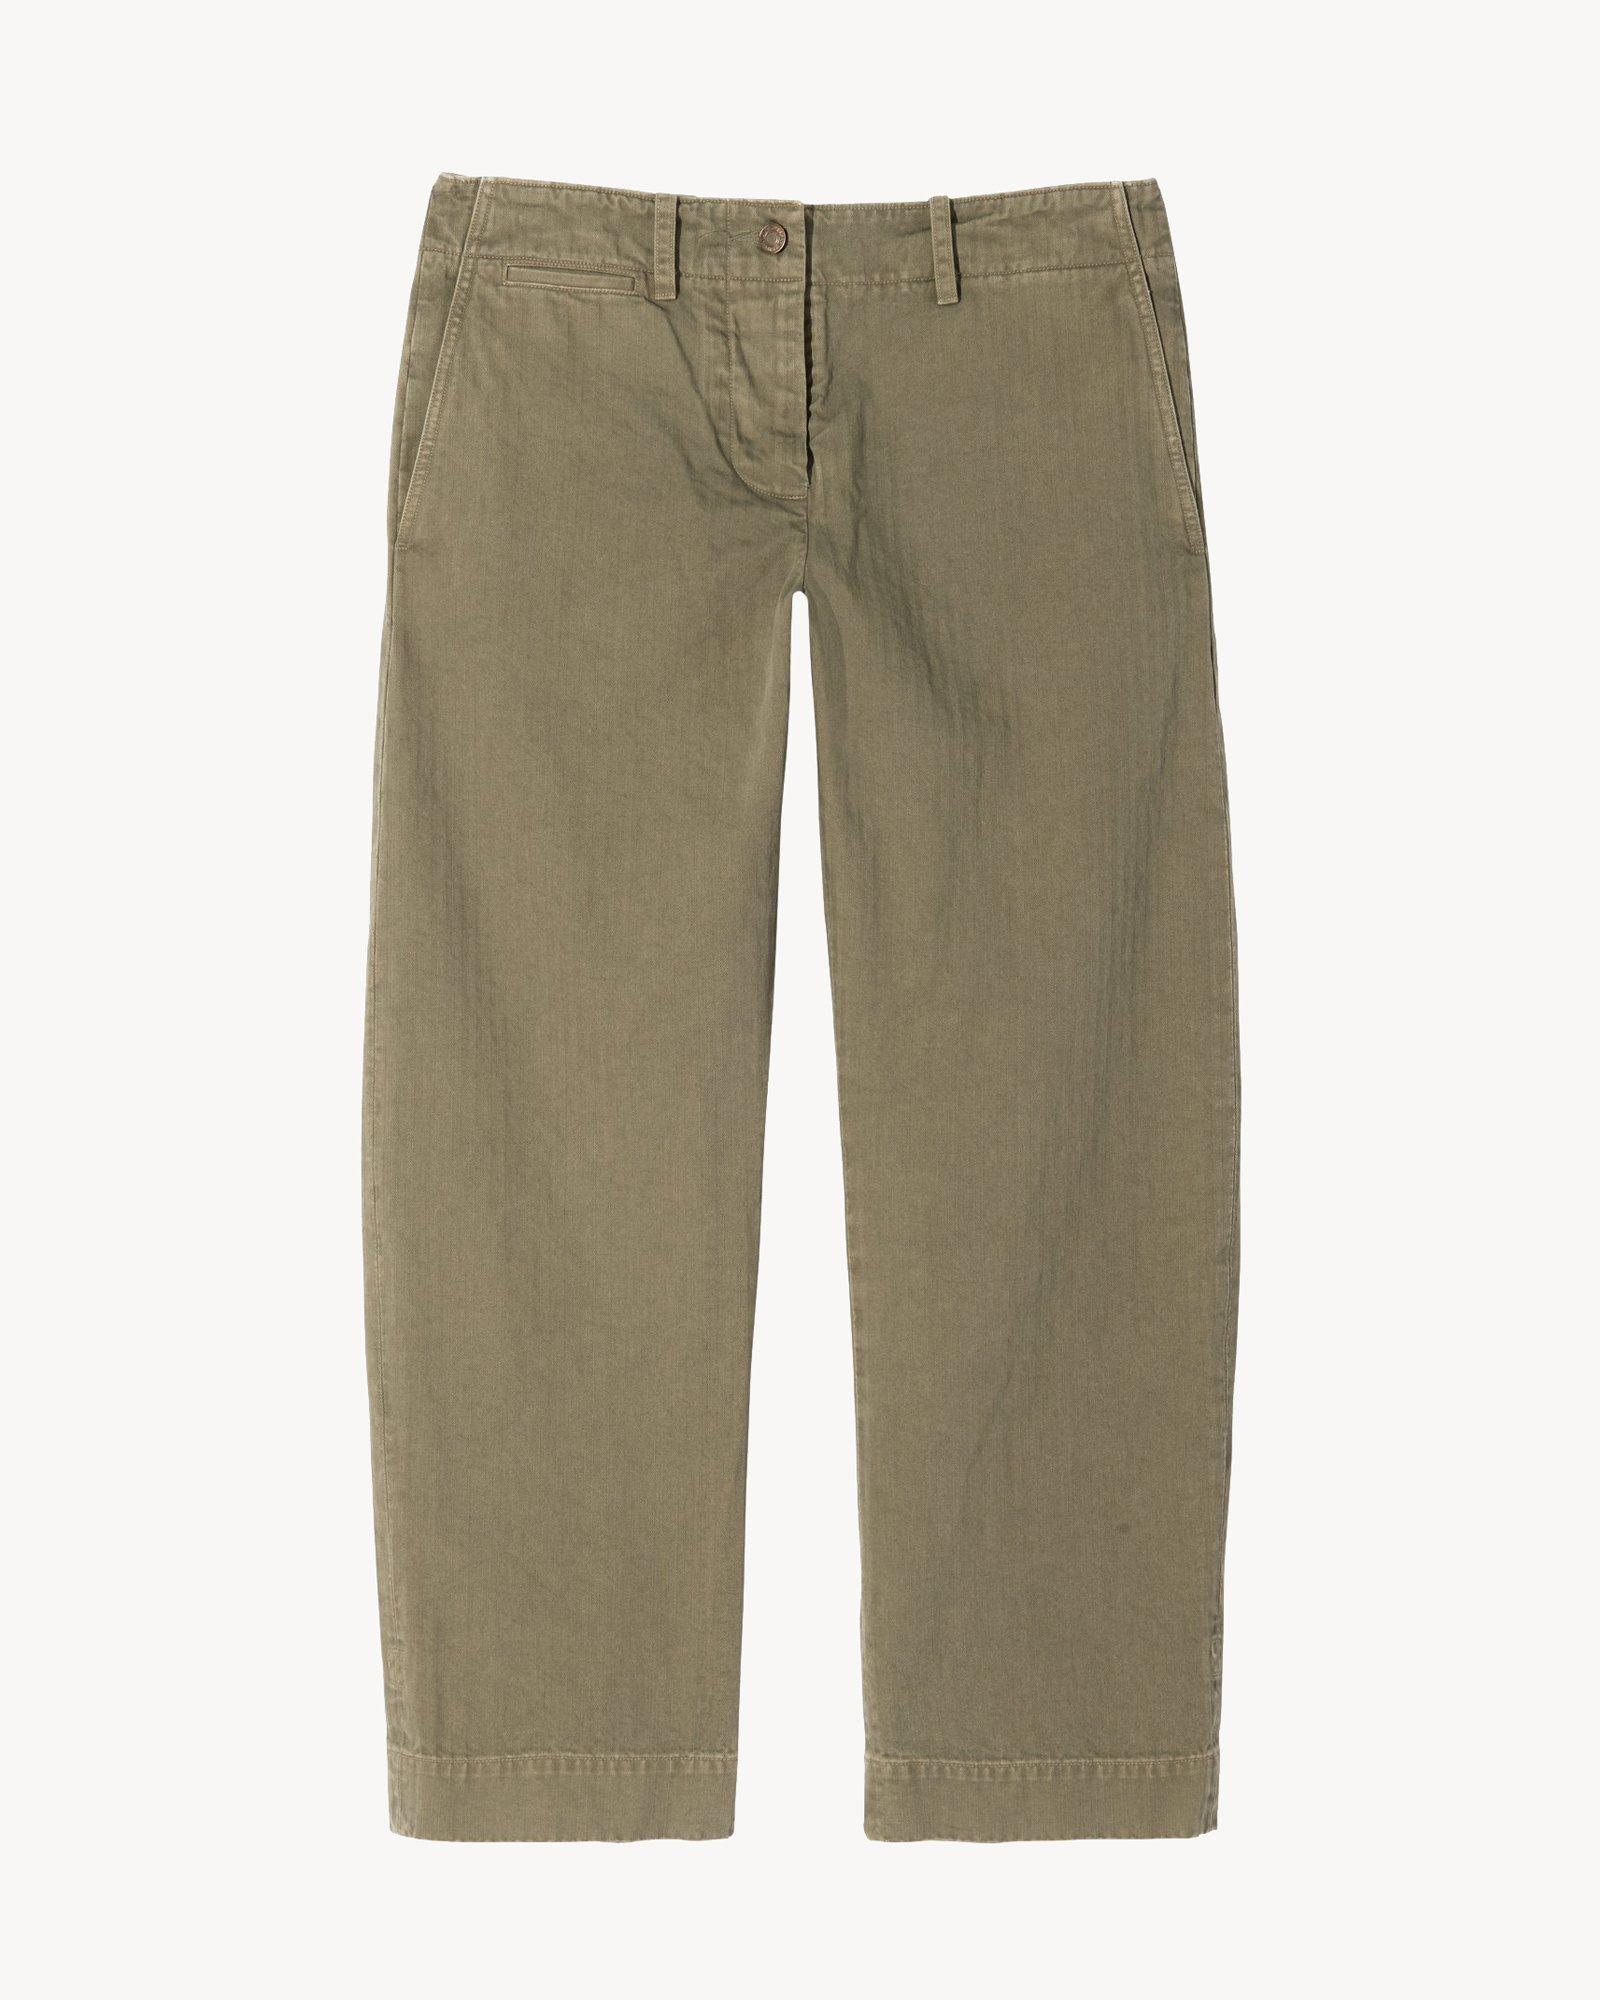 TOMBOY PANT WITH CUFF 4